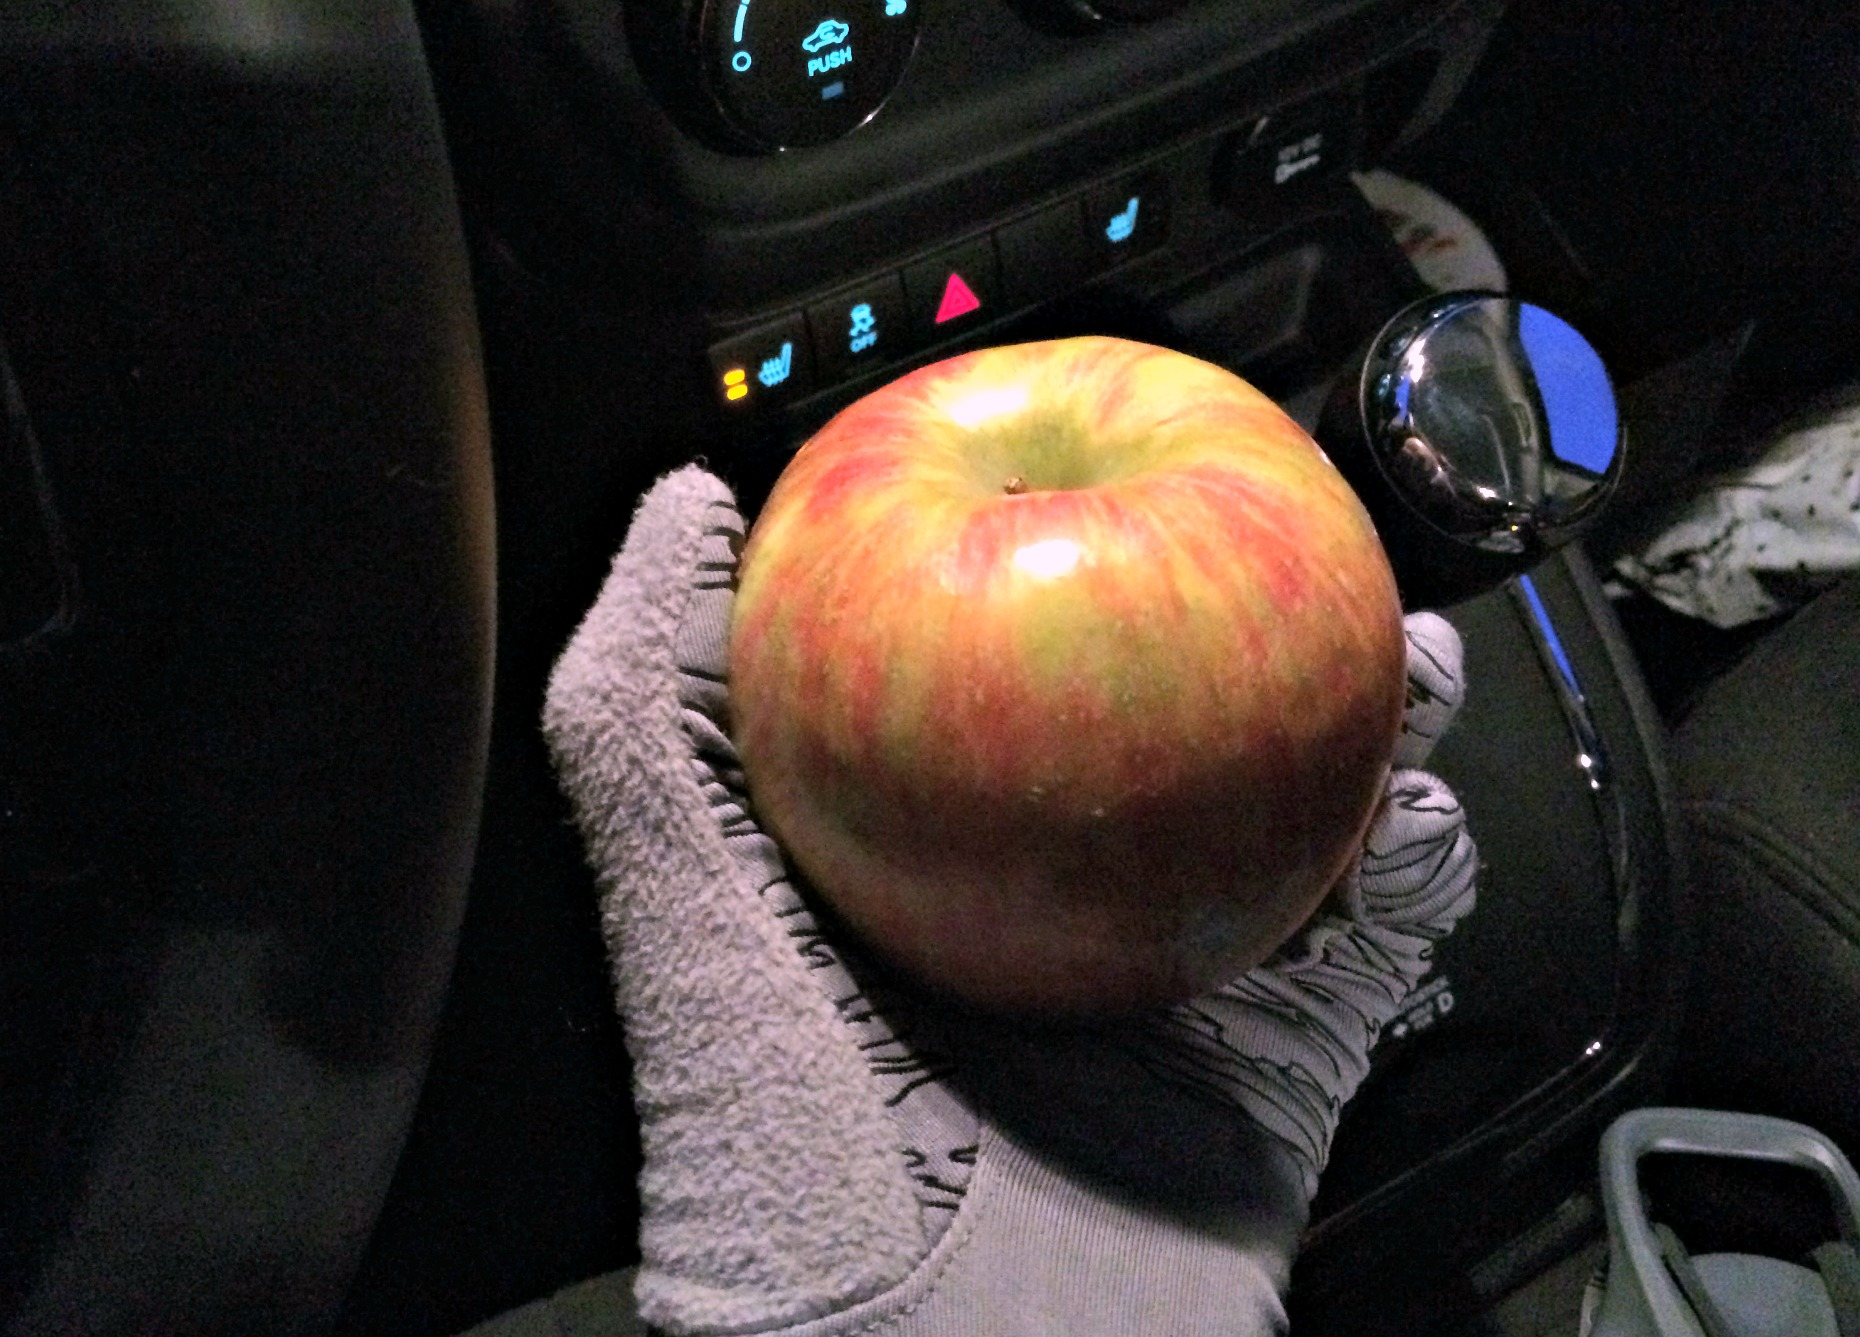 apple on the way to the gym